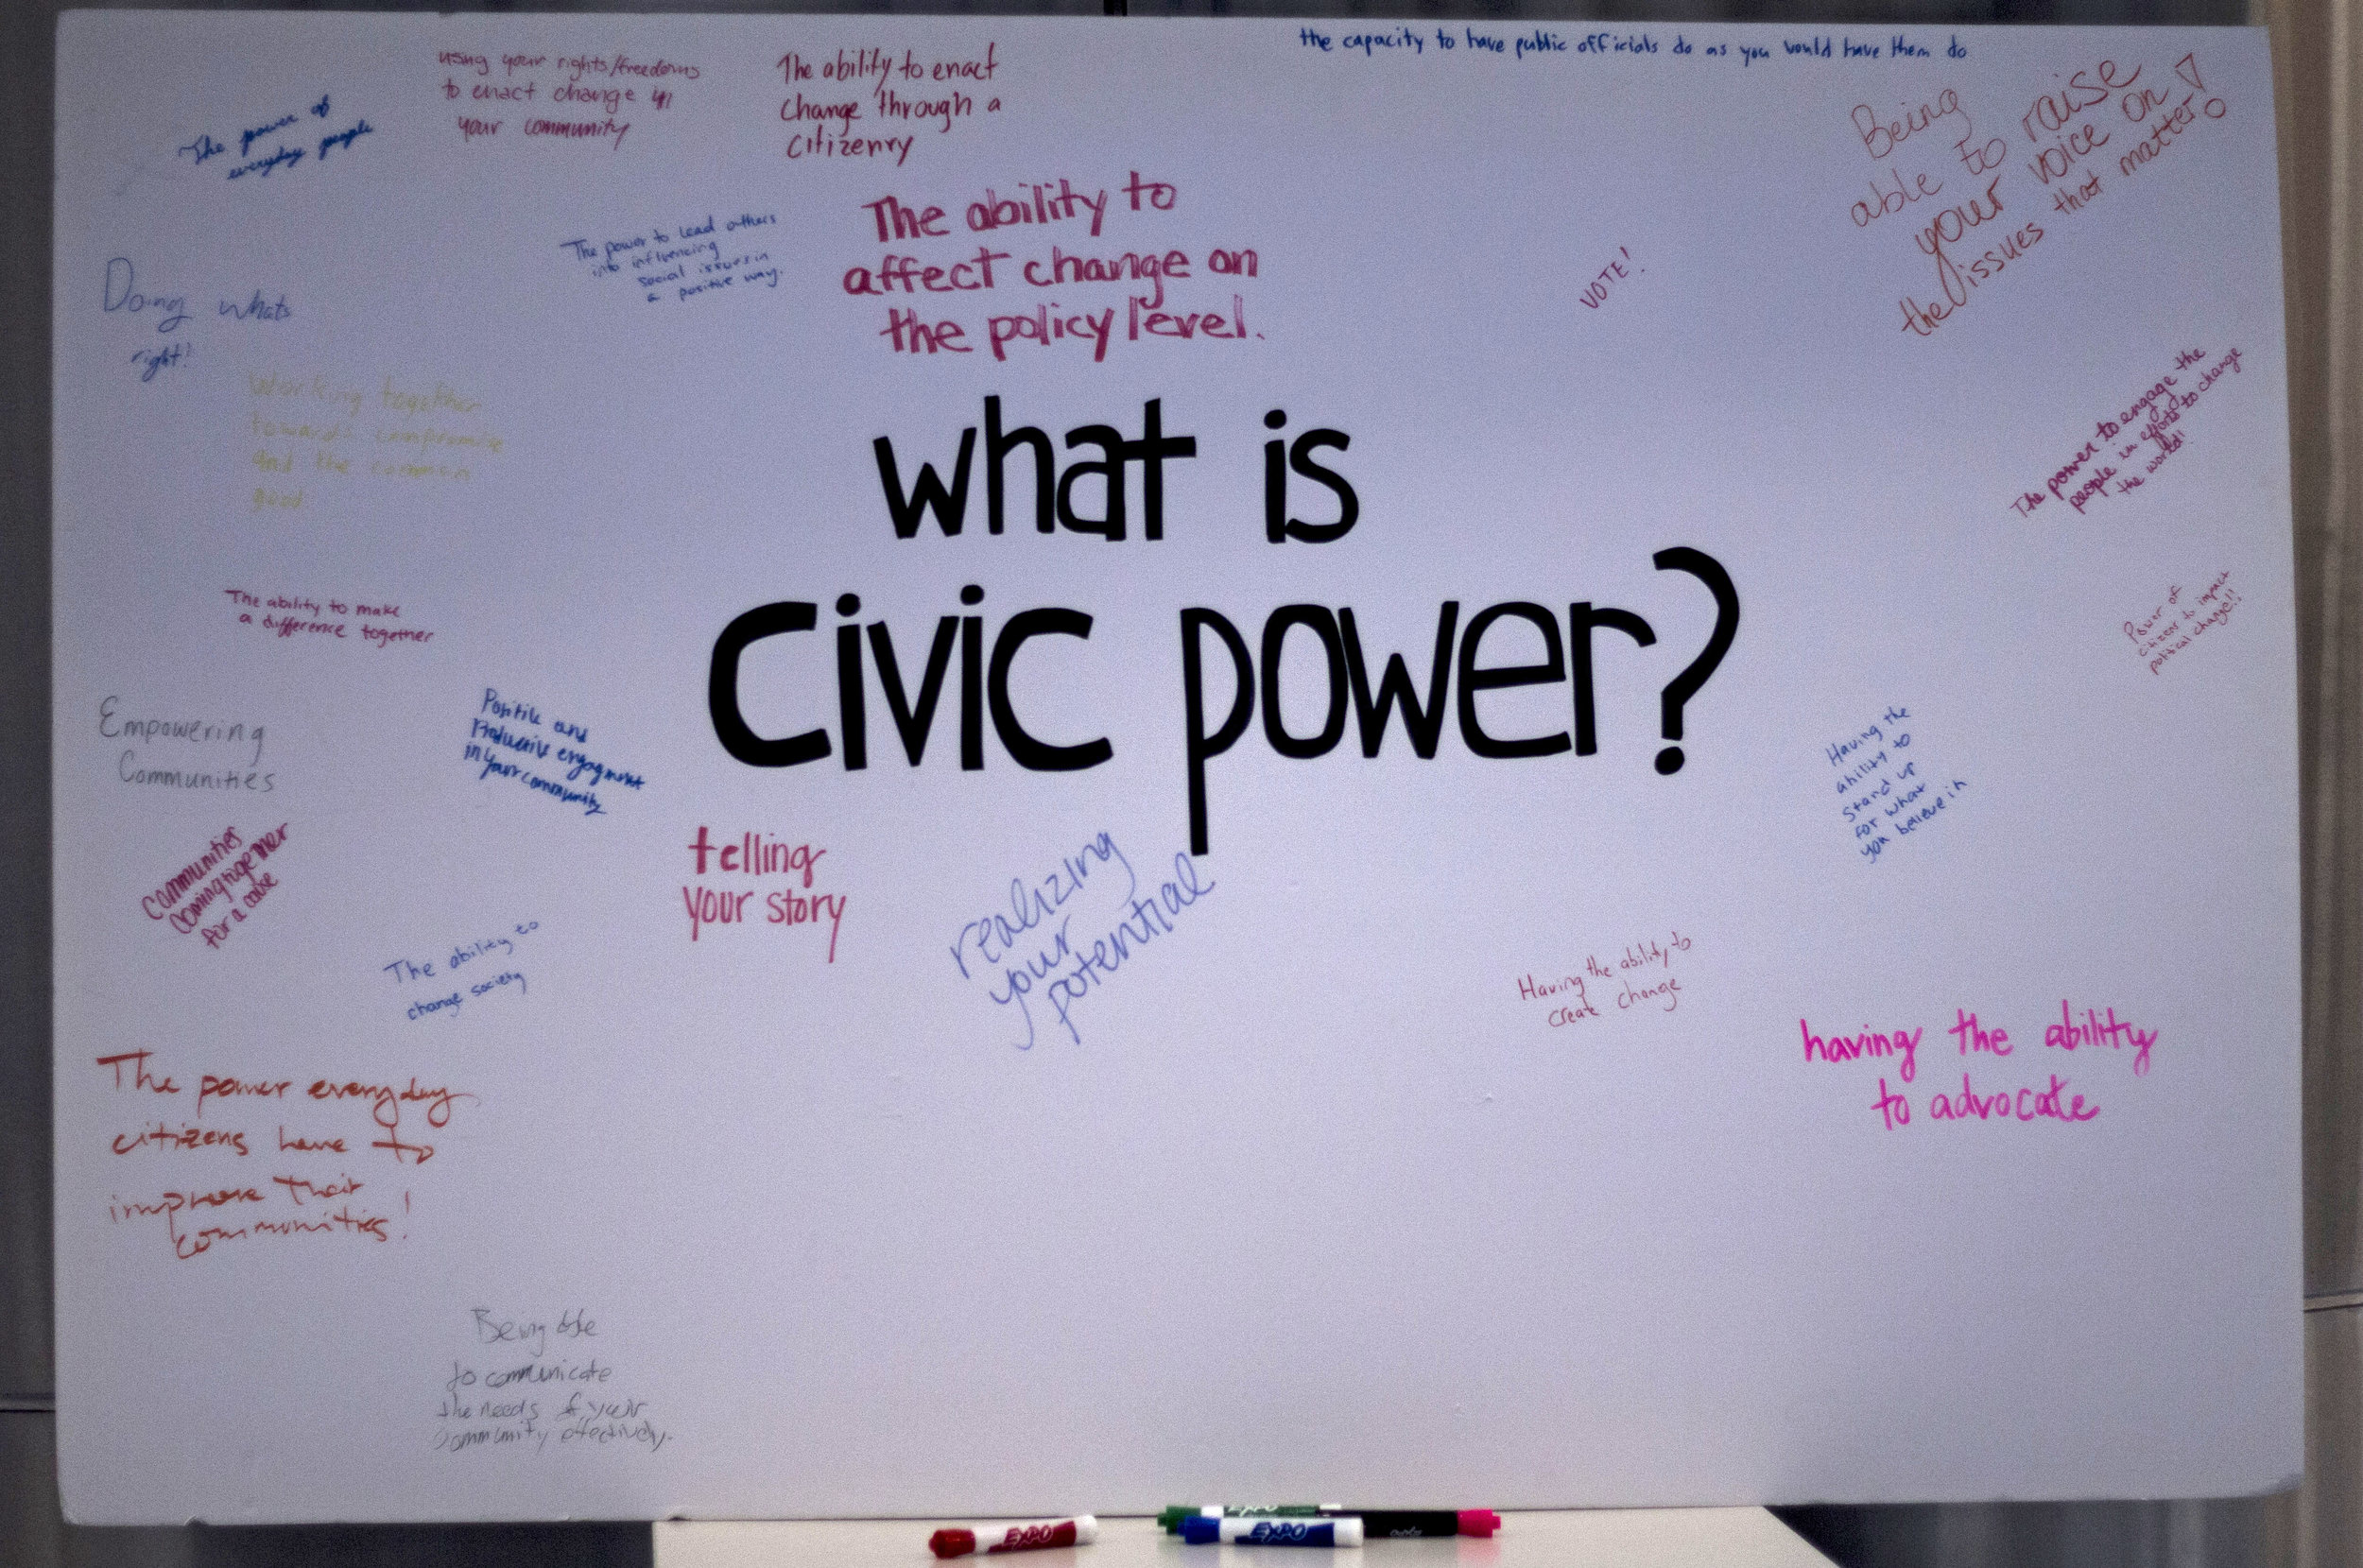 Throughout the event participants were able to answer what civic power meant to them.